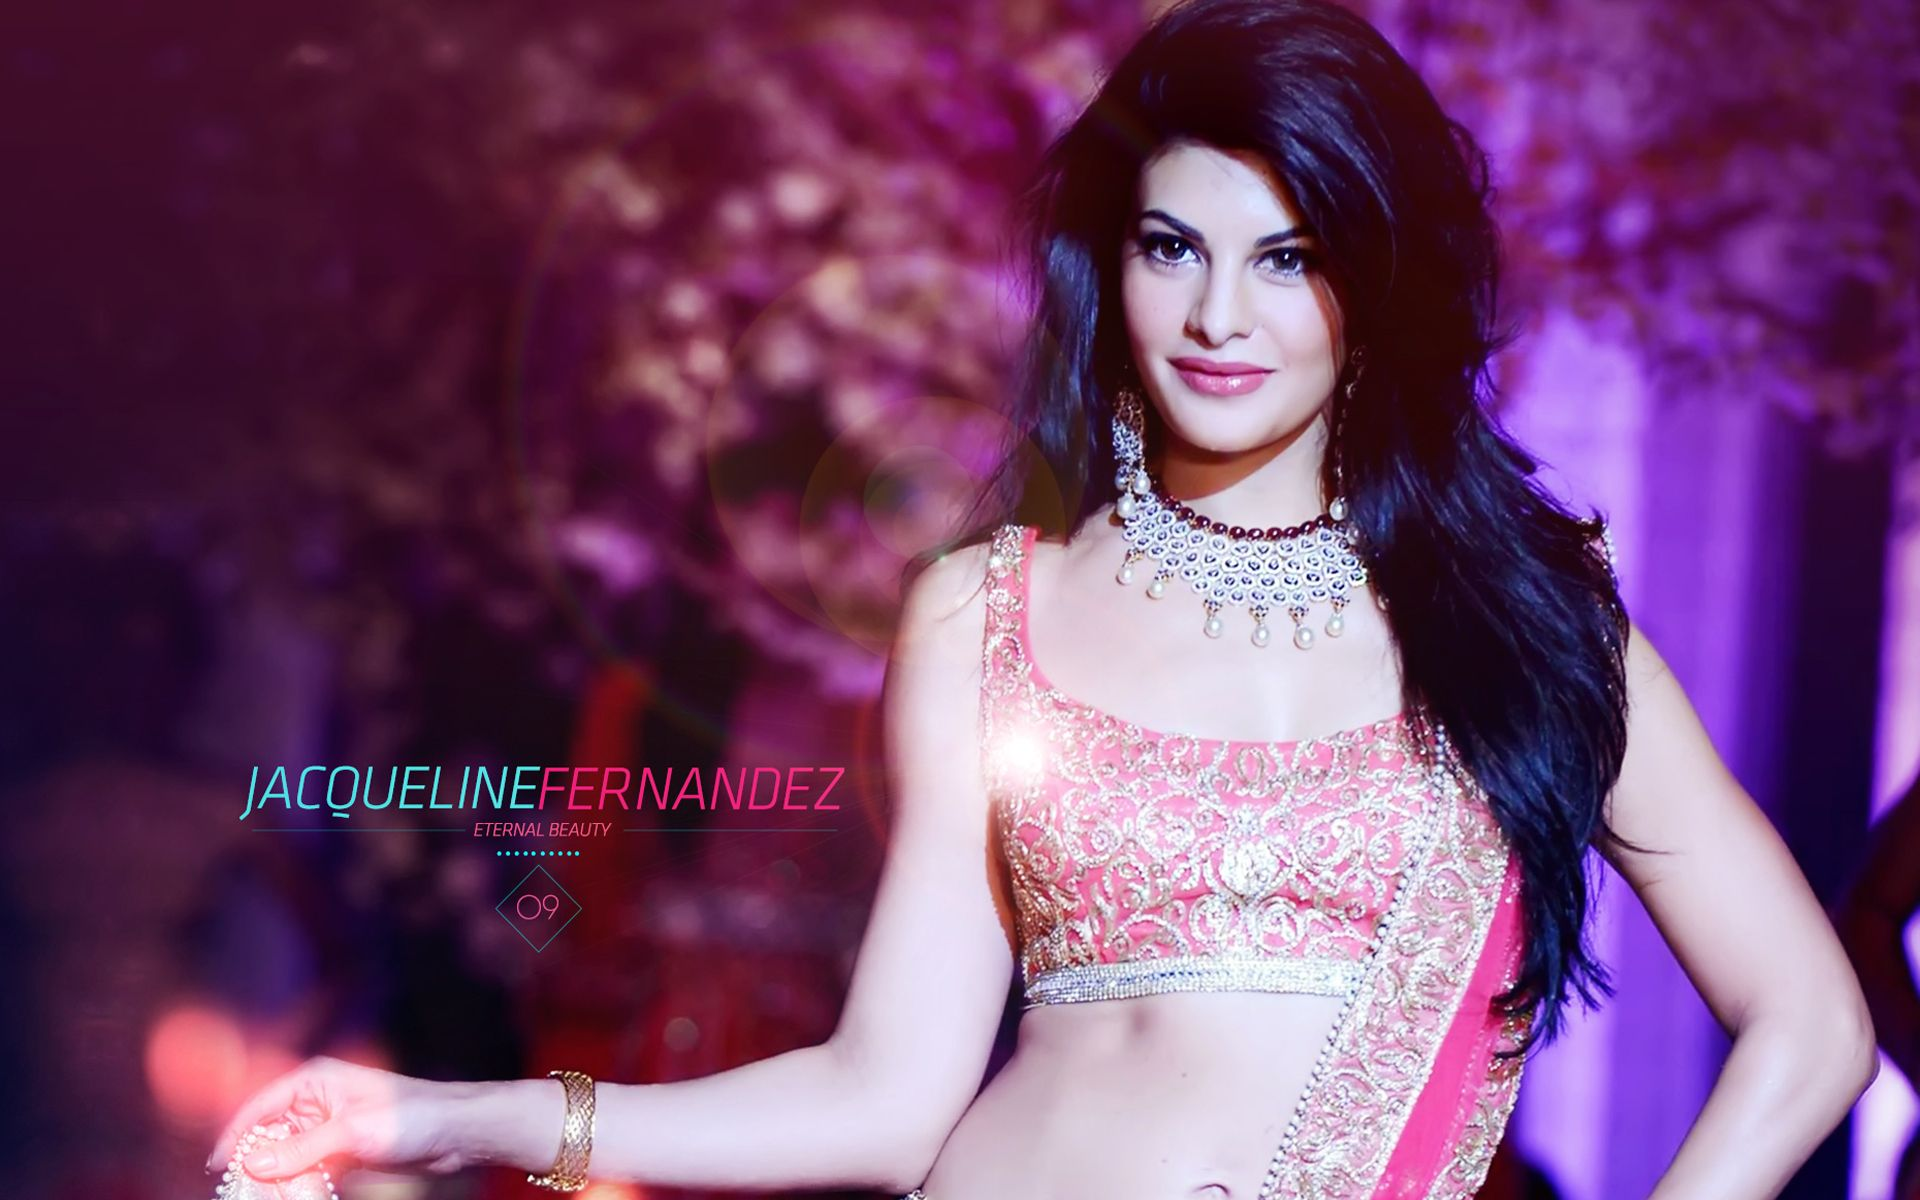 Download Bollywood Actress Hd Wallpapers 1080p Free: Jacqueline Fernandez Hot Hd Wallpaper Download Jacqueline